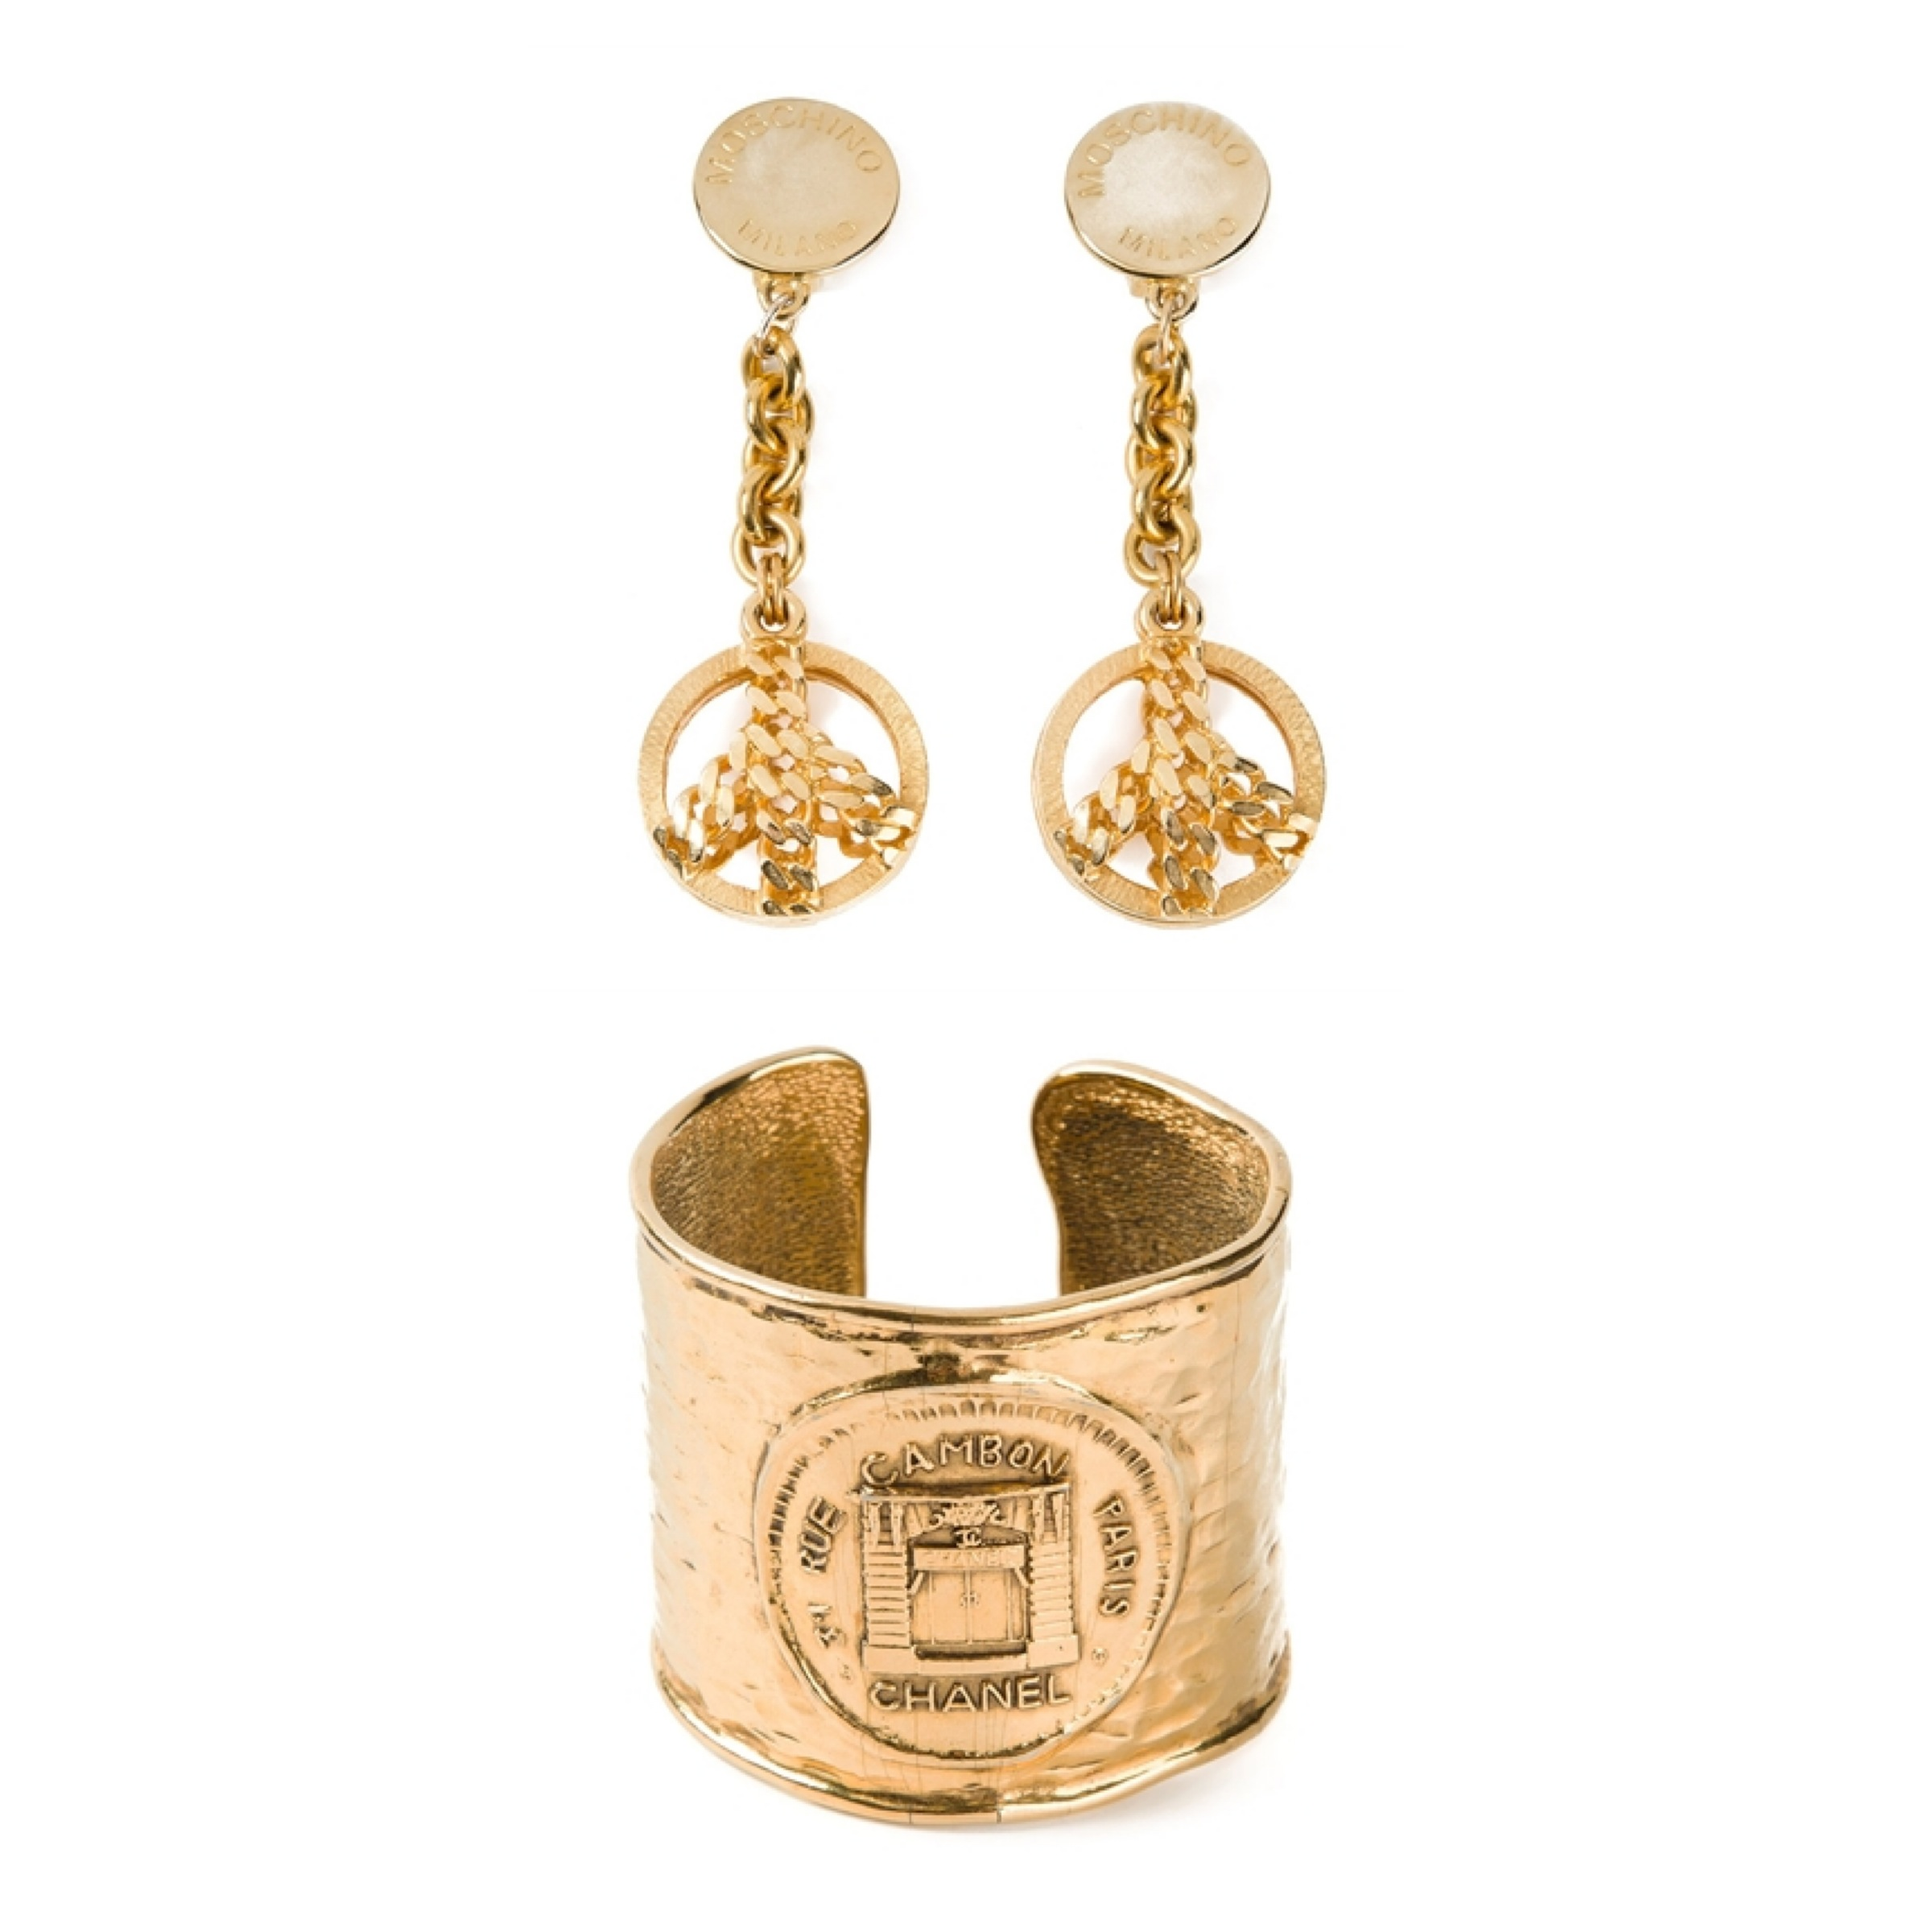 Gold Moschino Vintage Drop earrings Chanel logo cuff